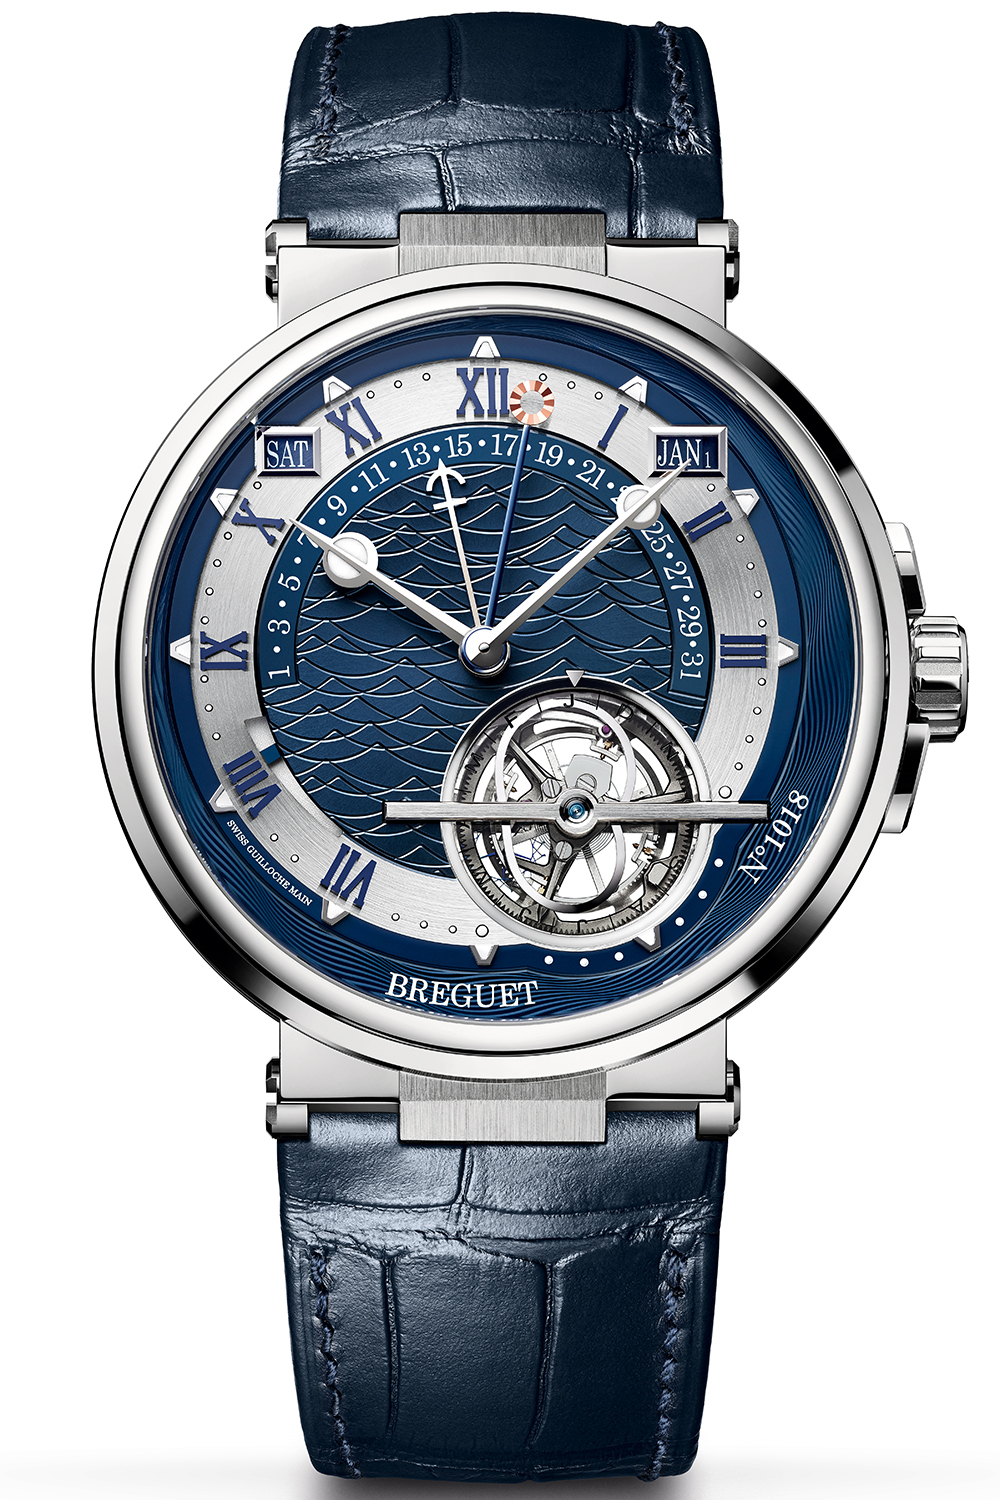 It's Tourbillon Day! Check Out These 12 Intriguing Tourbillon Watches Launched This Year